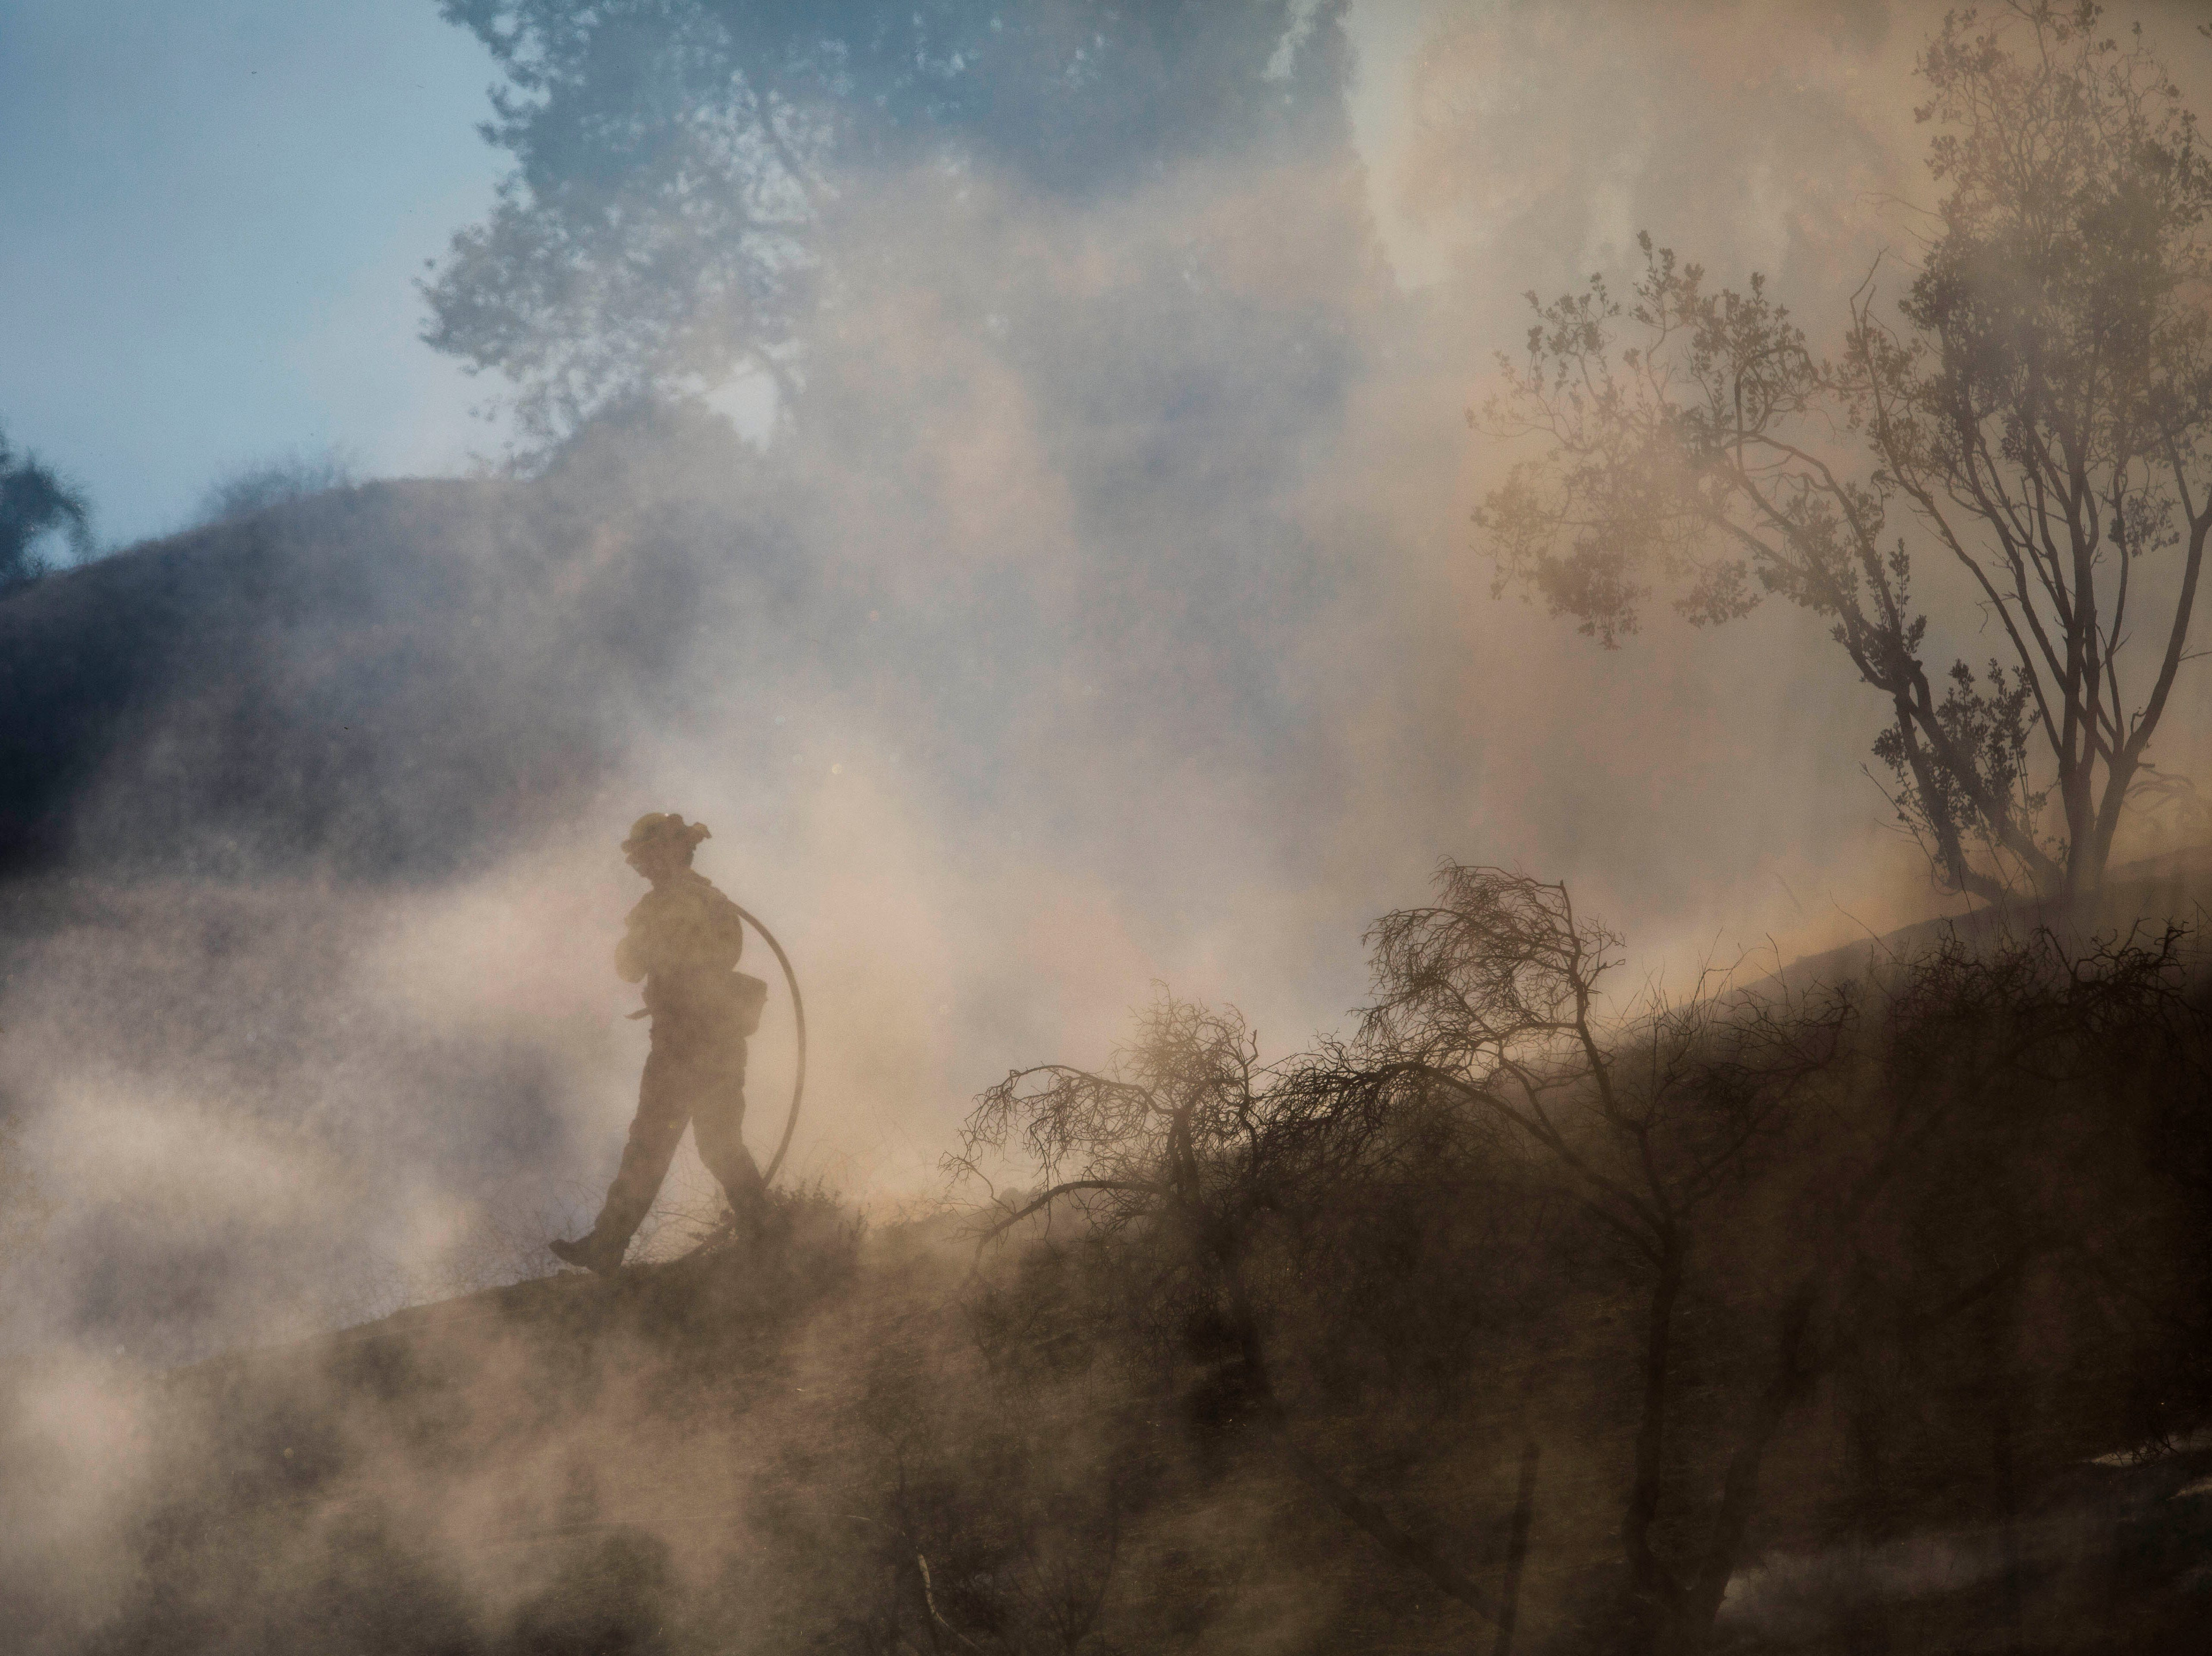 Firefighters put out flareup on a hill in West Hills during the Woolsey Fire in Southern California on Nov. 10, 2018.